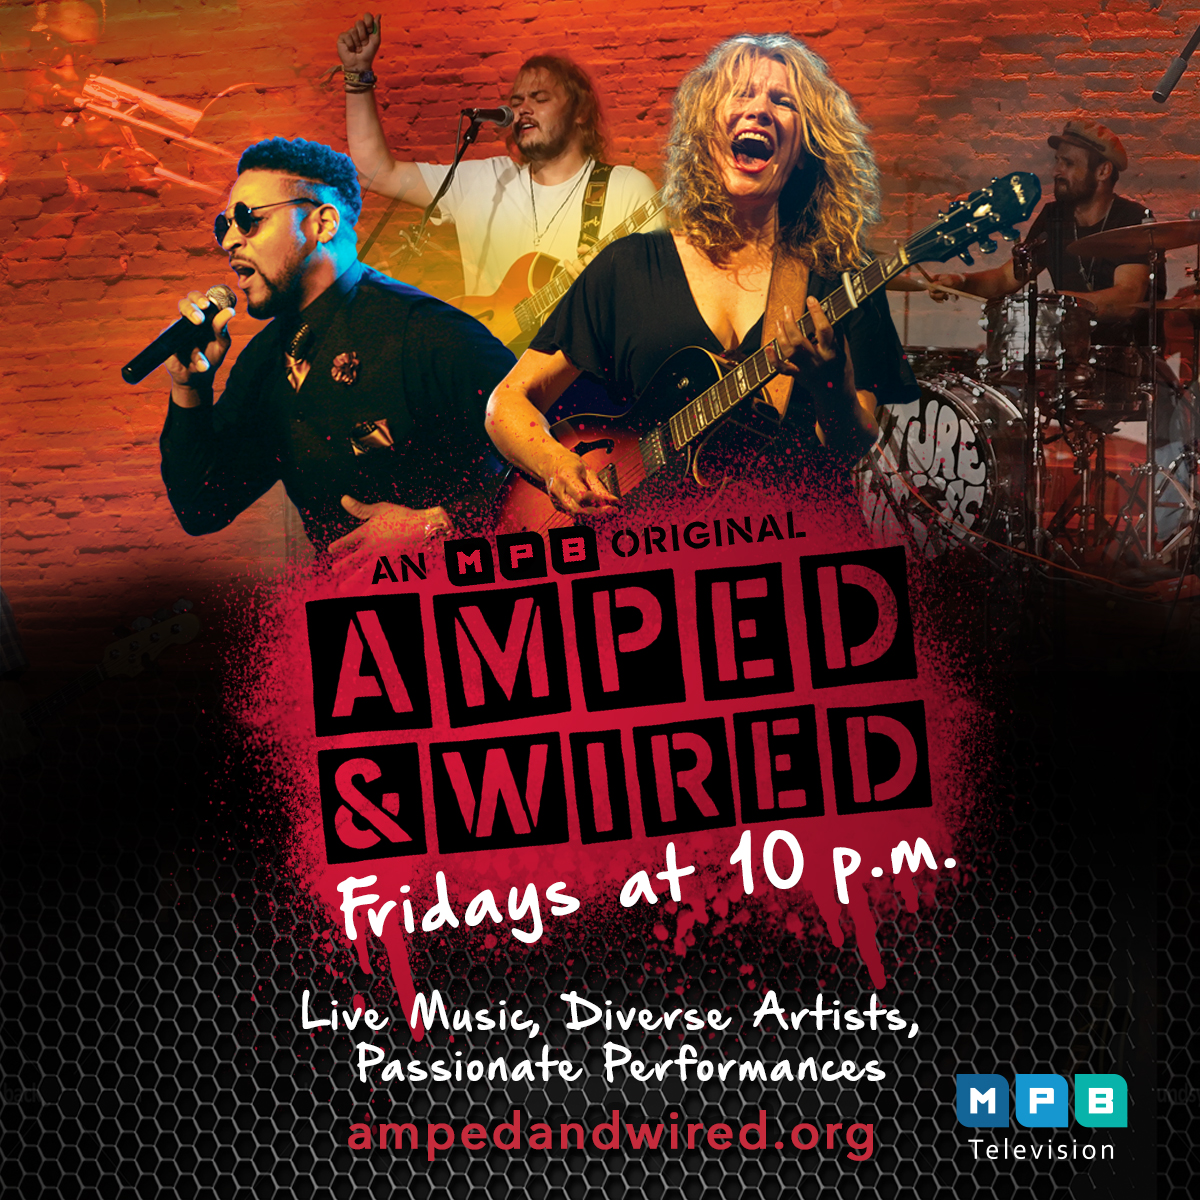 New Episodes of Amped & Wired Begin Friday, October 20 at 10PM on MPB Television